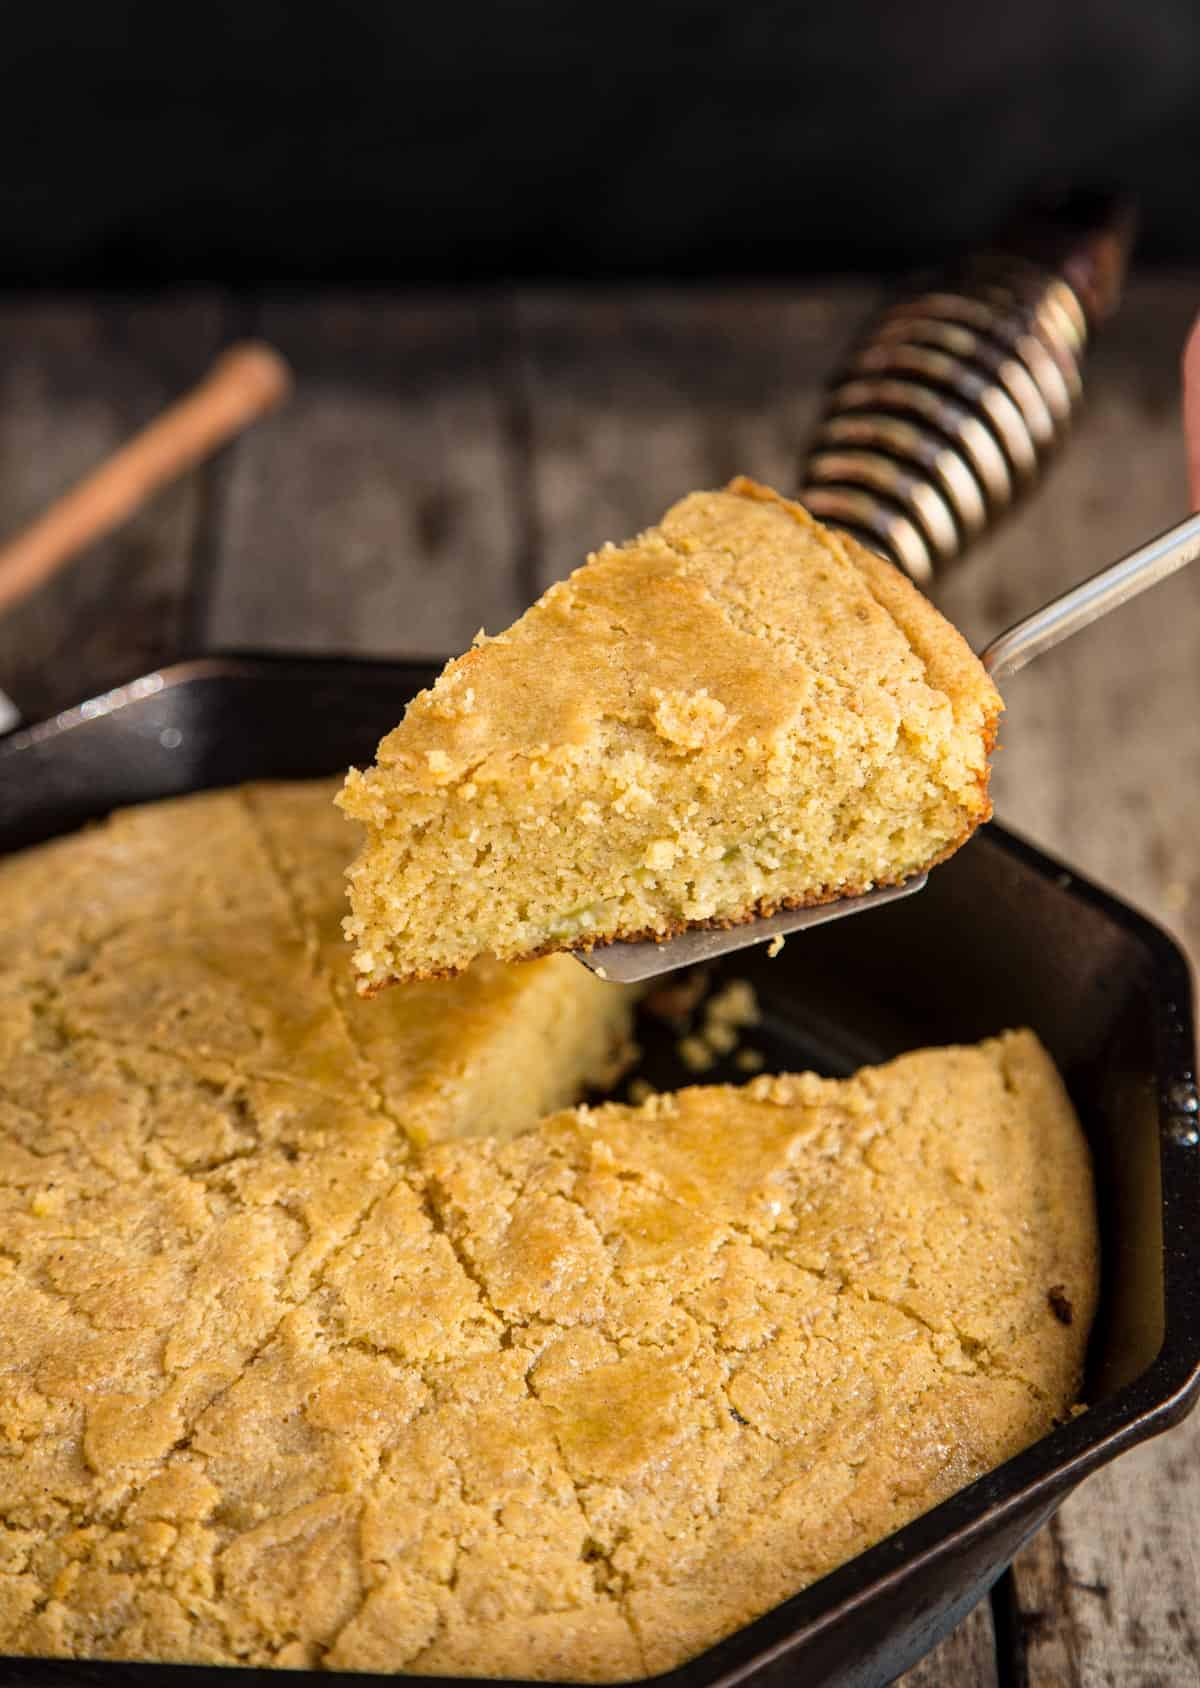 A slice of Cast Iron Skillet Cornbread made with gluten free flour